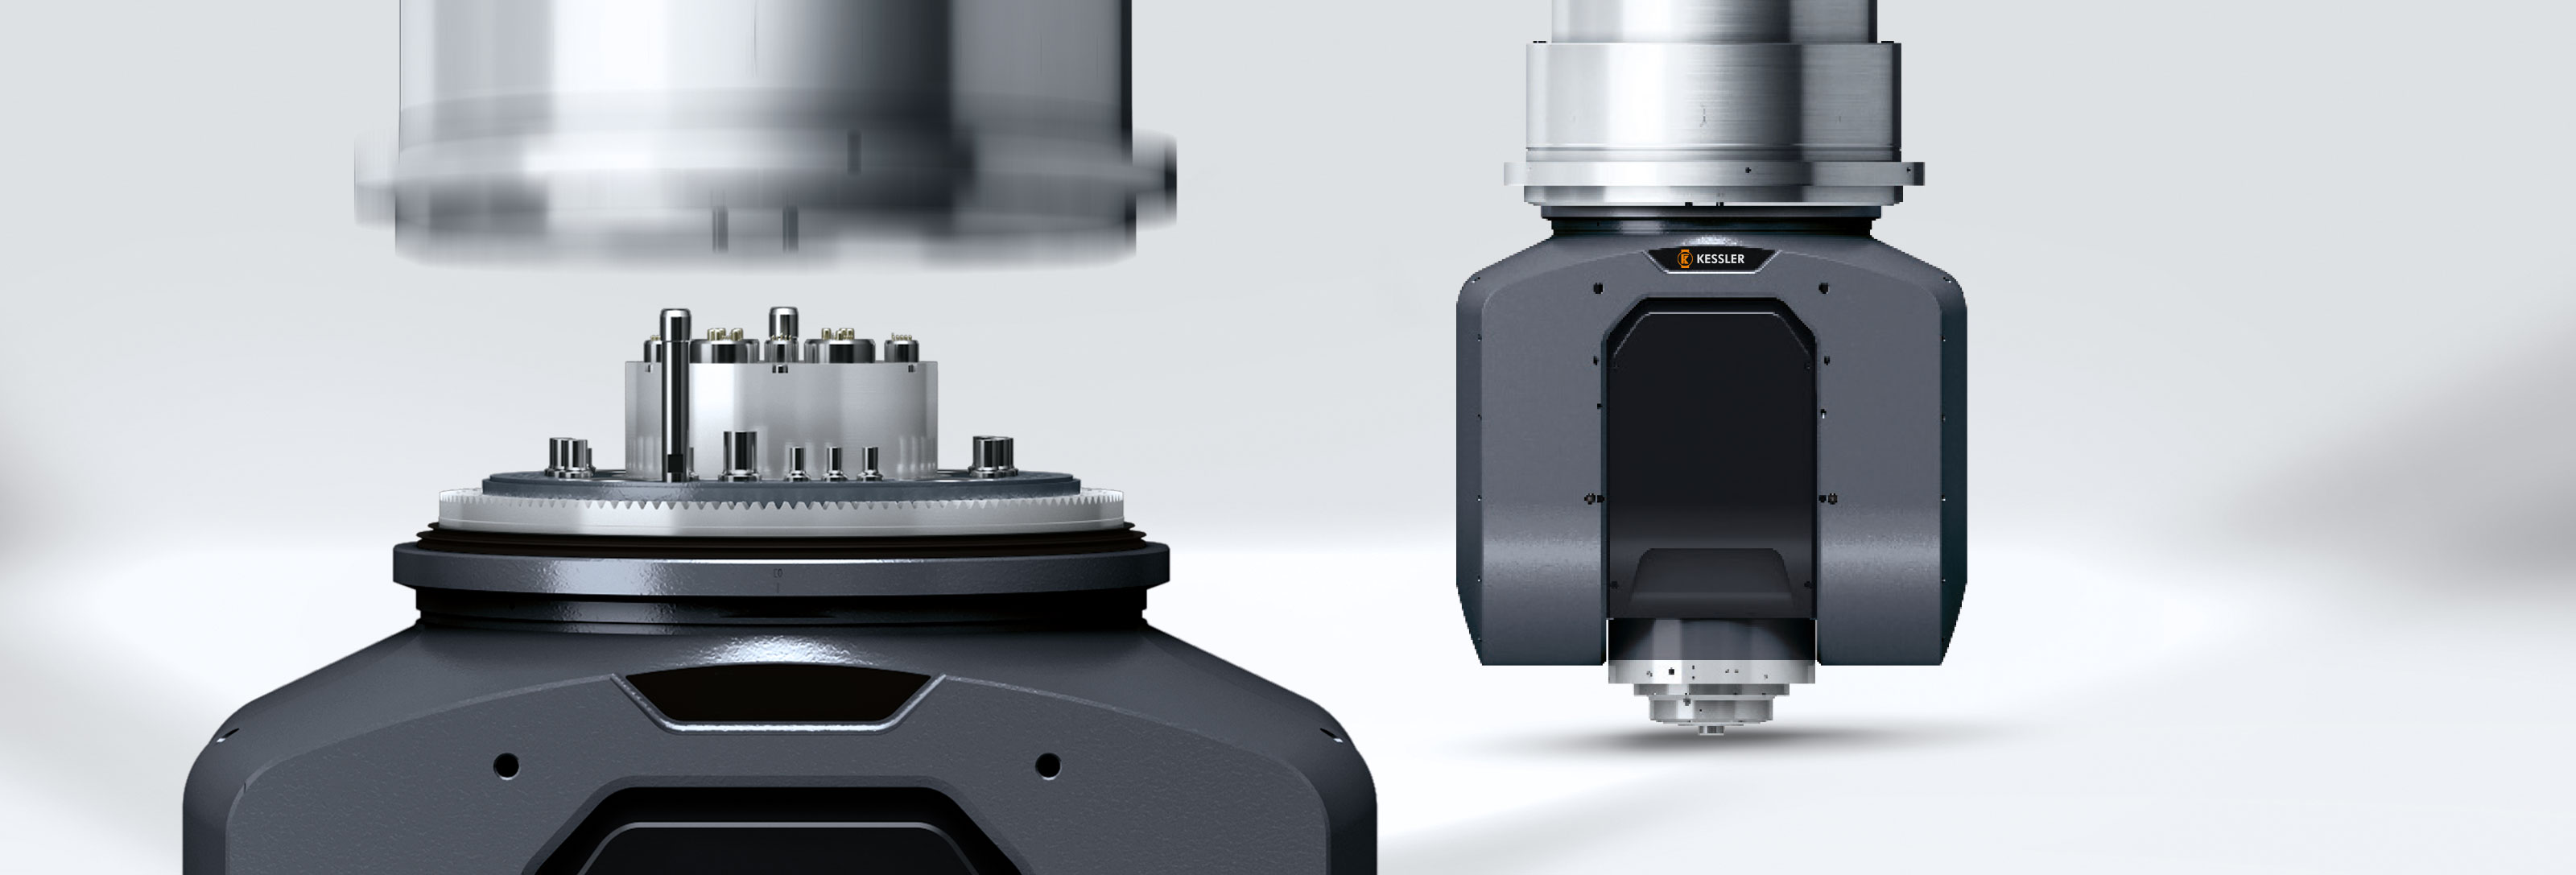 KESSLER 2-axis heads - Experts for simultaneous machining